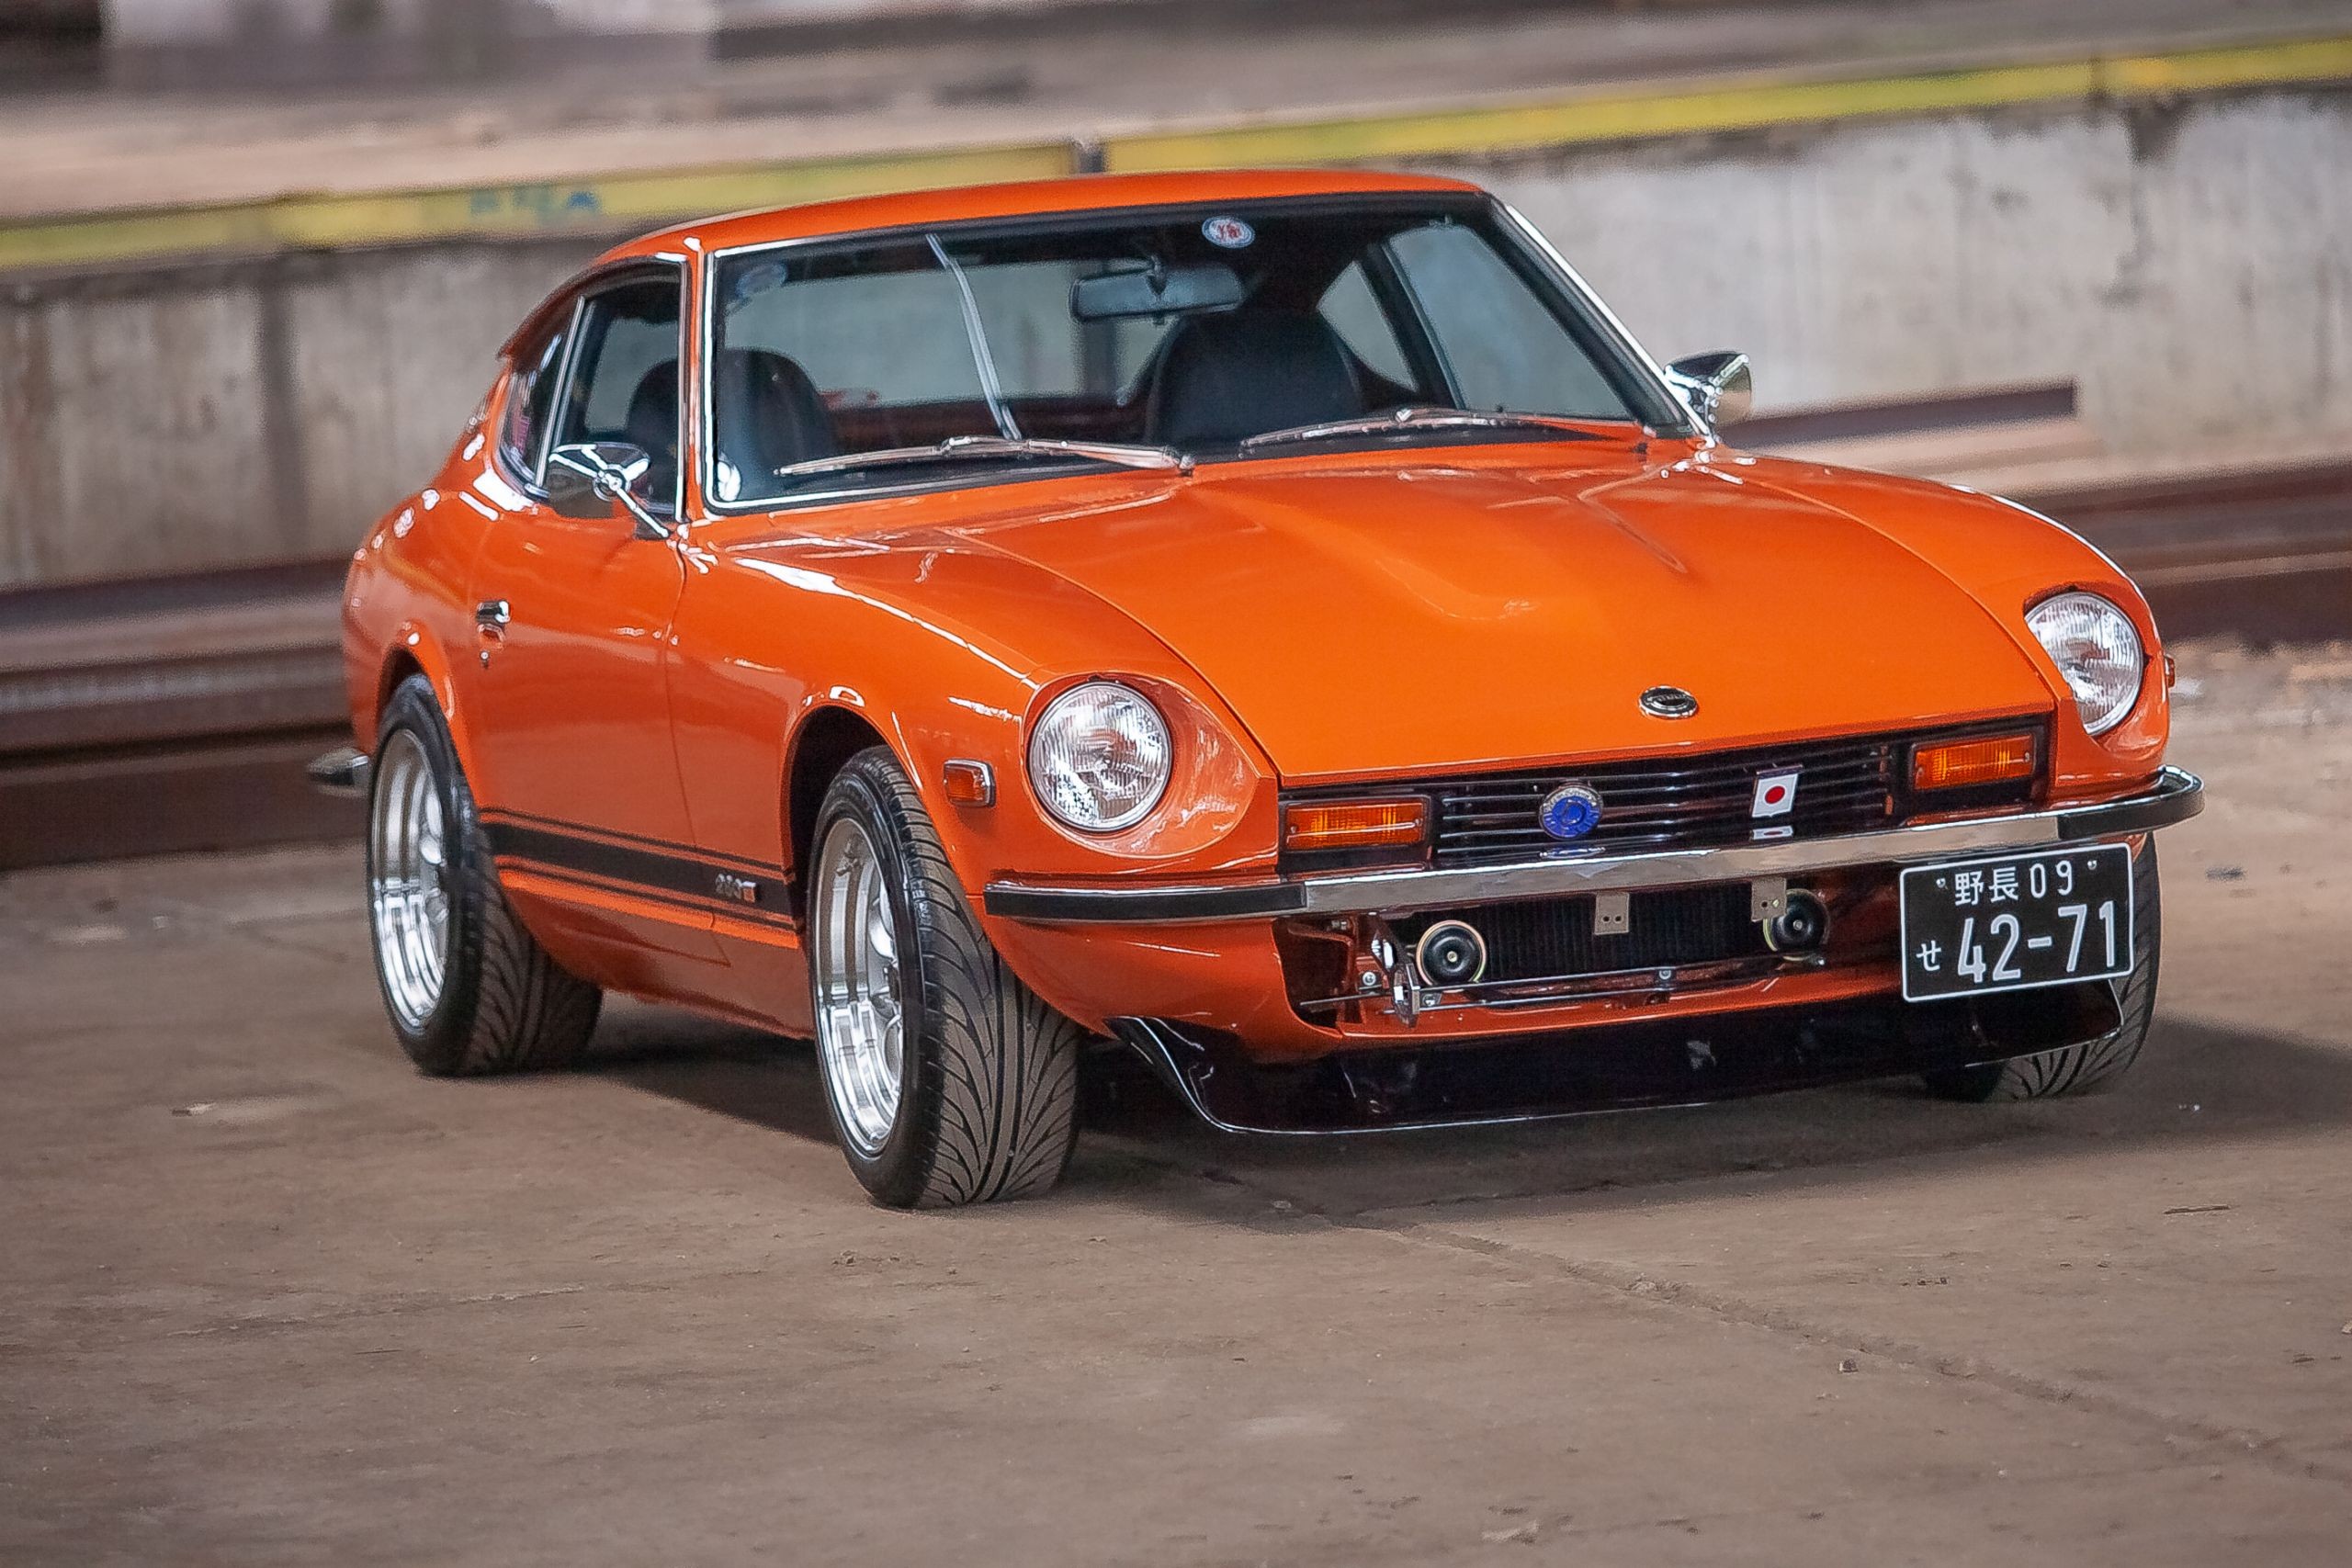 Totally restored Orange Nissan Datsun 280z for sale